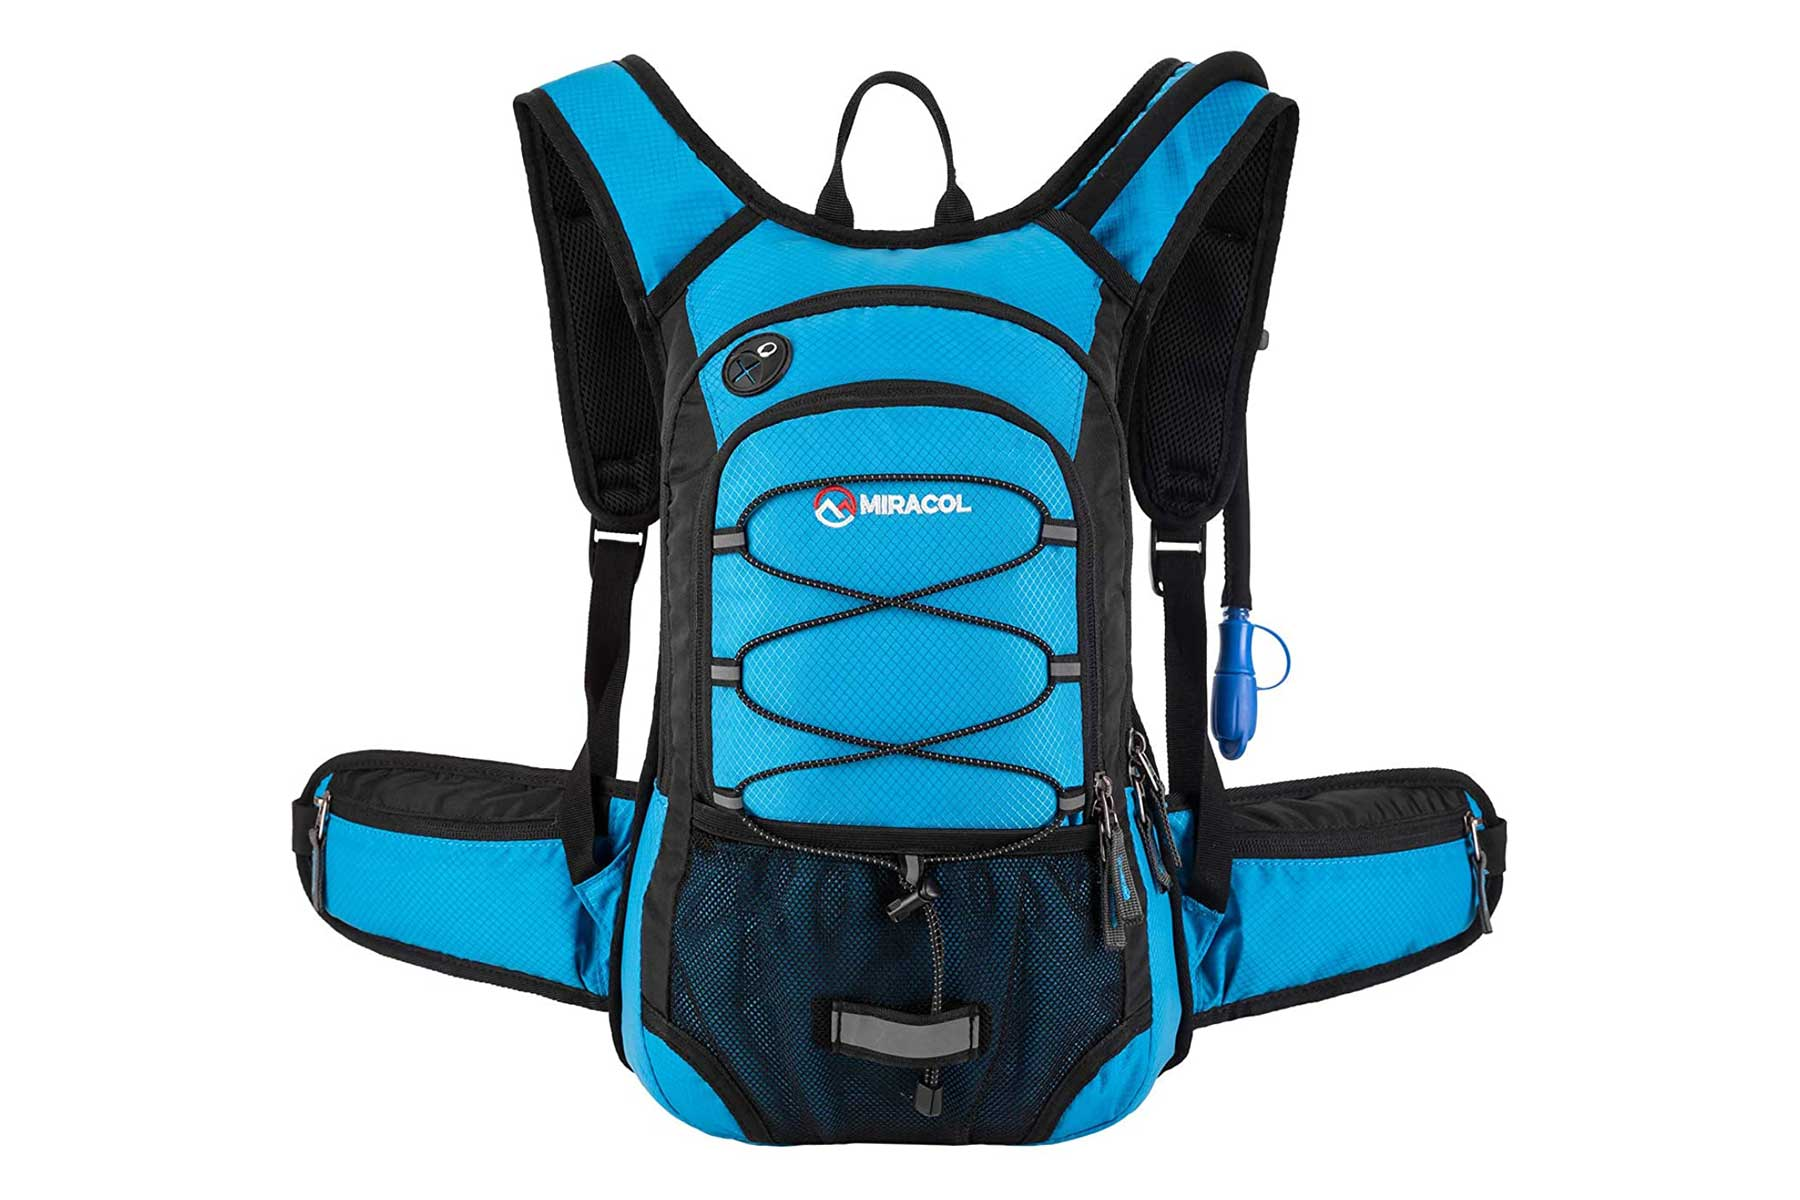 Miracle Hydration Backpack